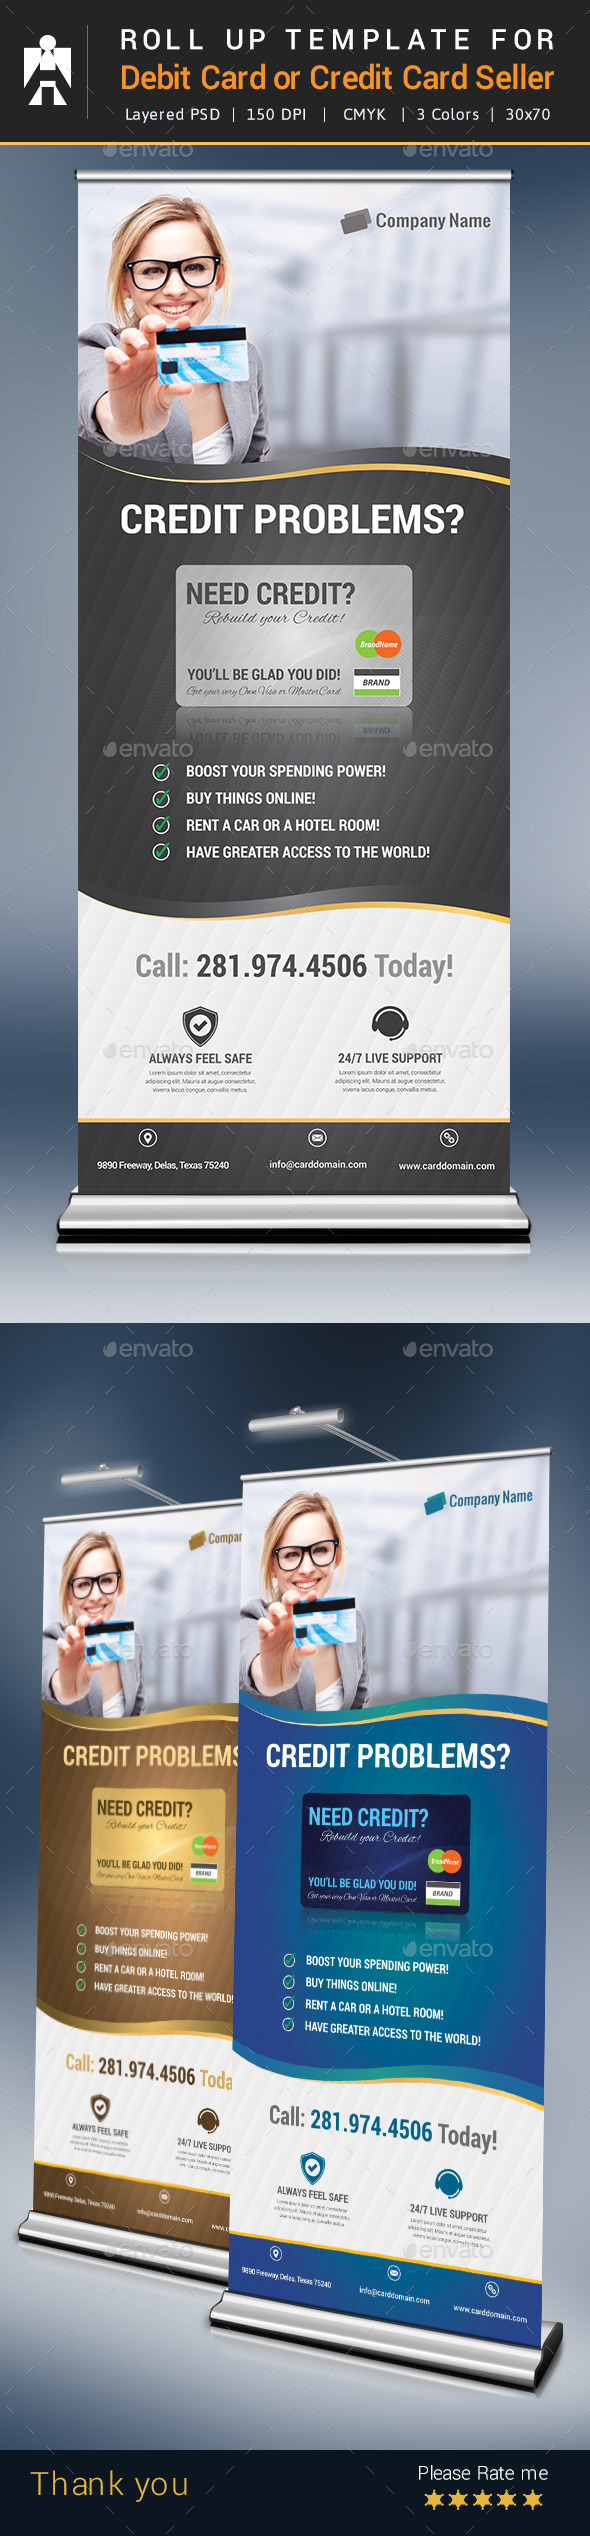 GraphicRiver Roll Up for Debit Card or Credit Card Seller 9370374